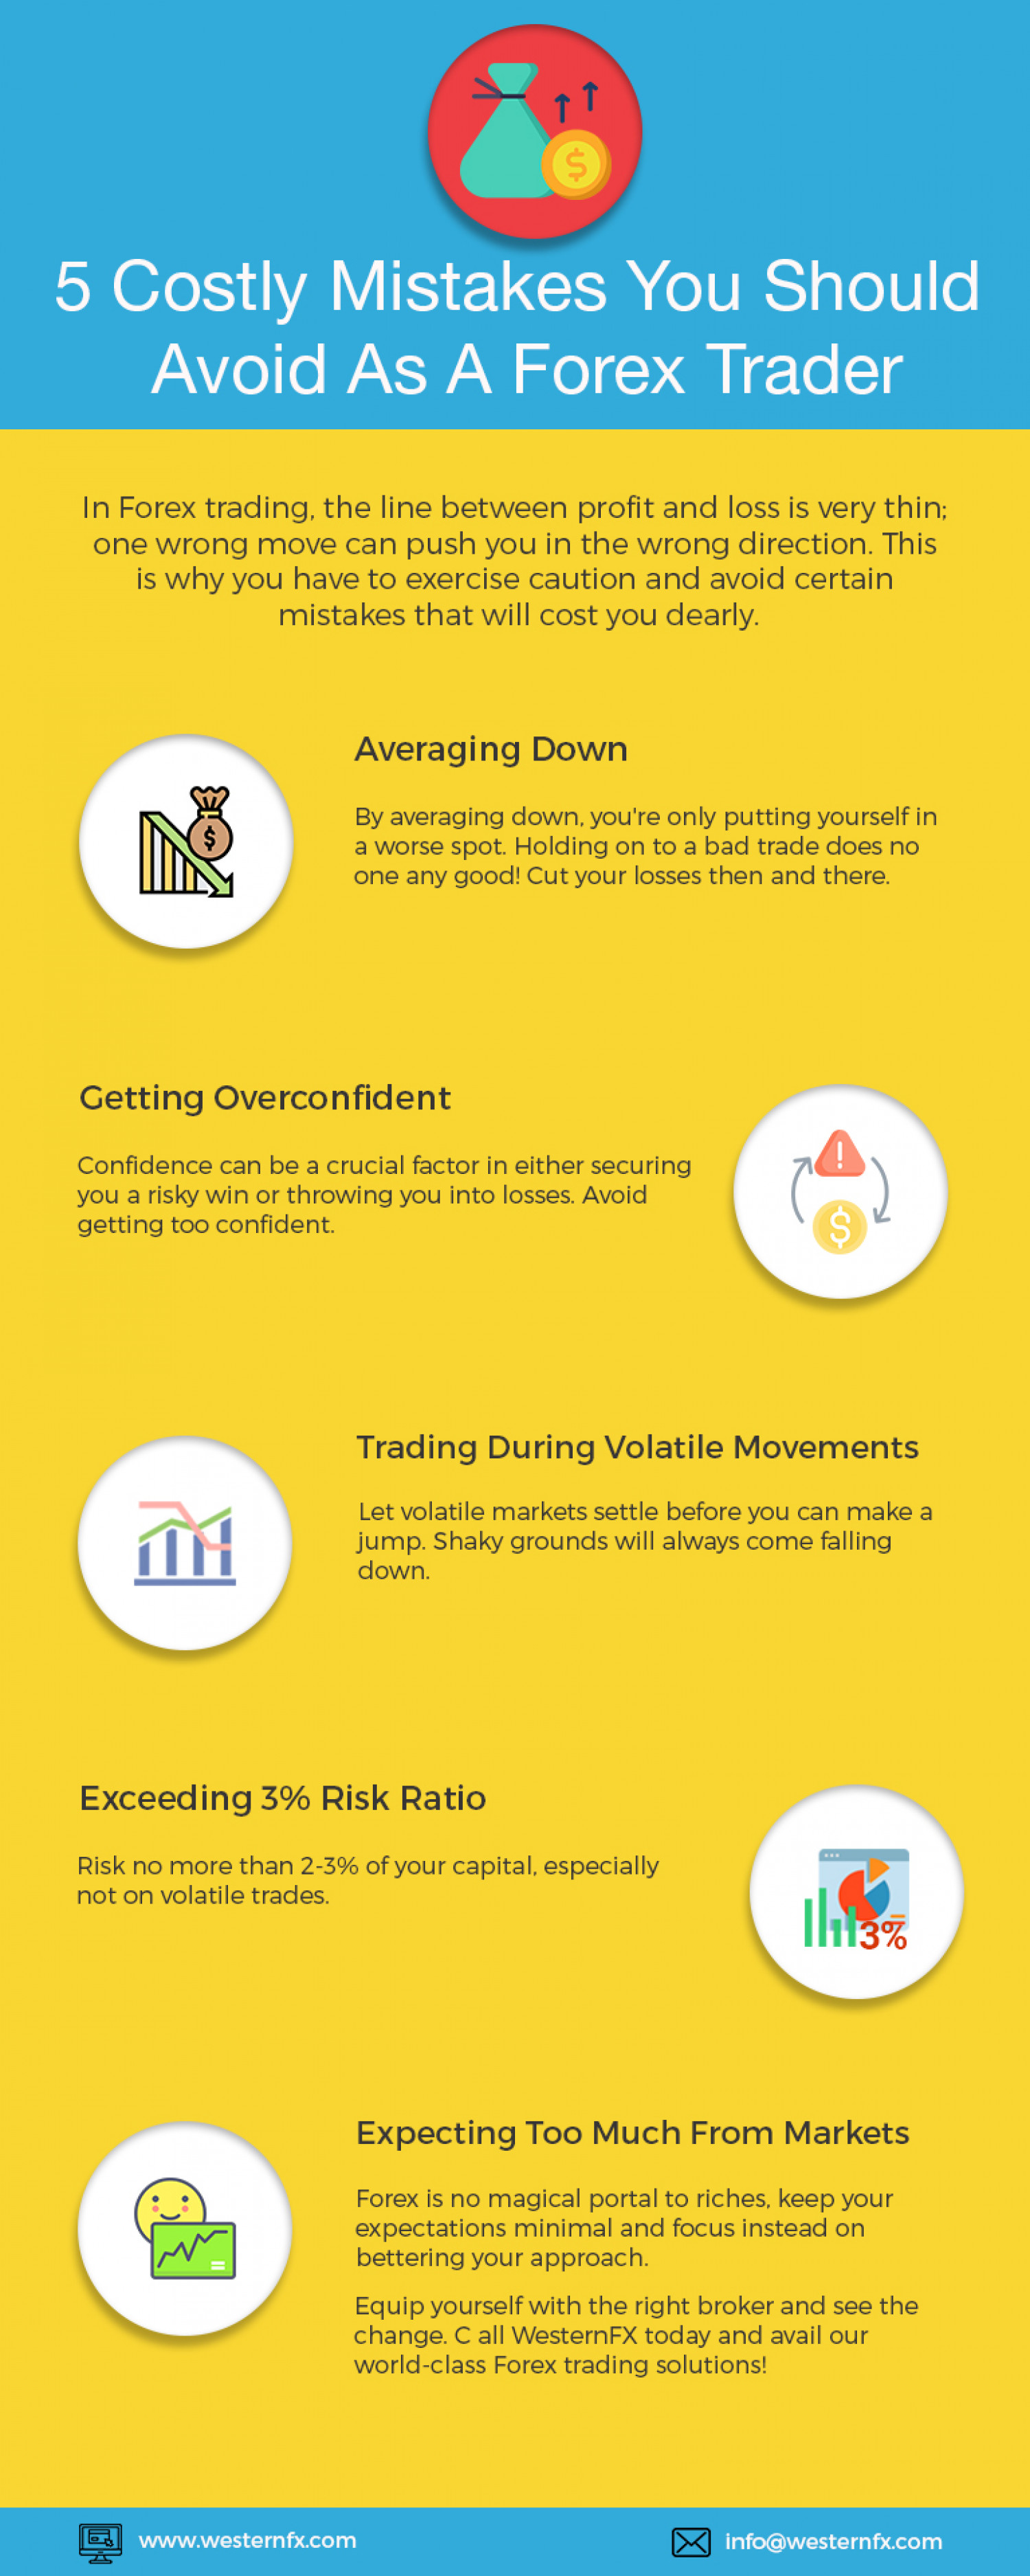 5 Mistakes That Is Very Expensive In The Forex Trading Markets Infographic